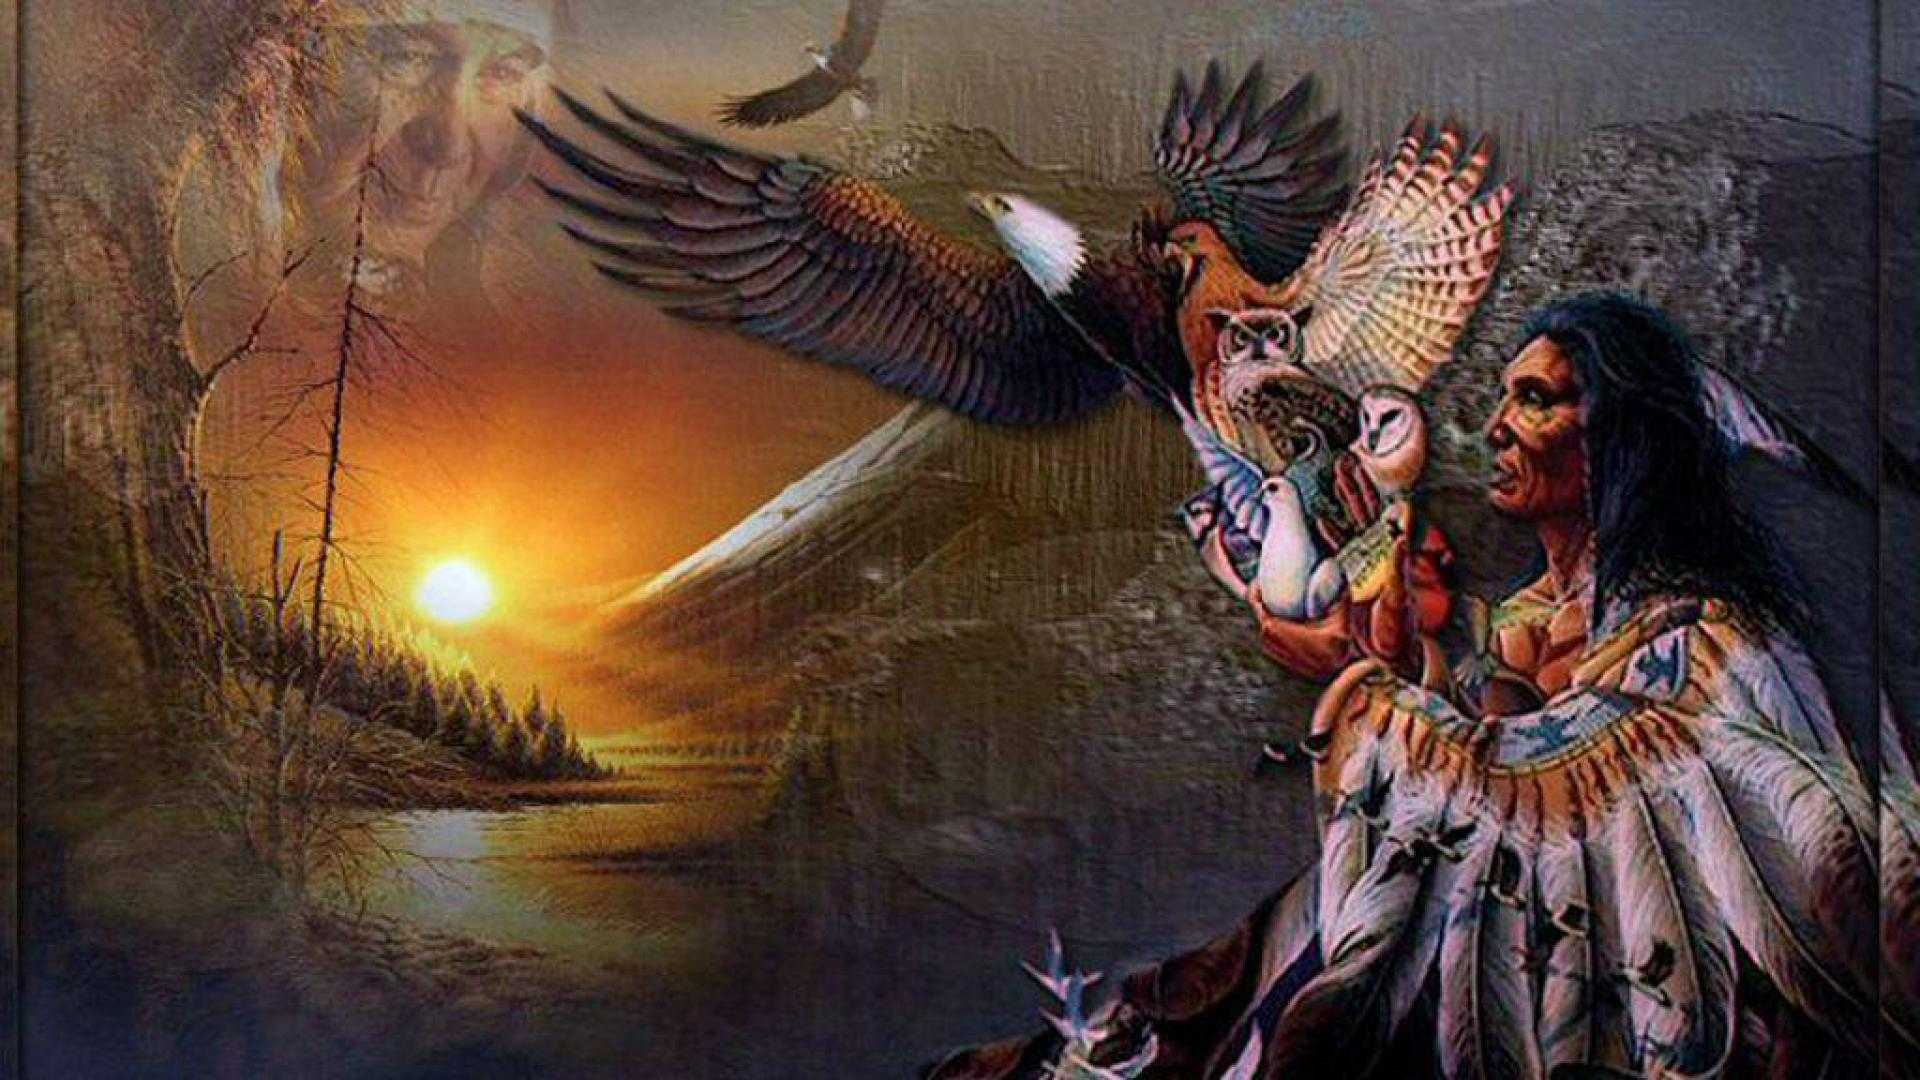 American Hd Wallpaper Widescreen 1920x1080: Native American Desktop Wallpapers